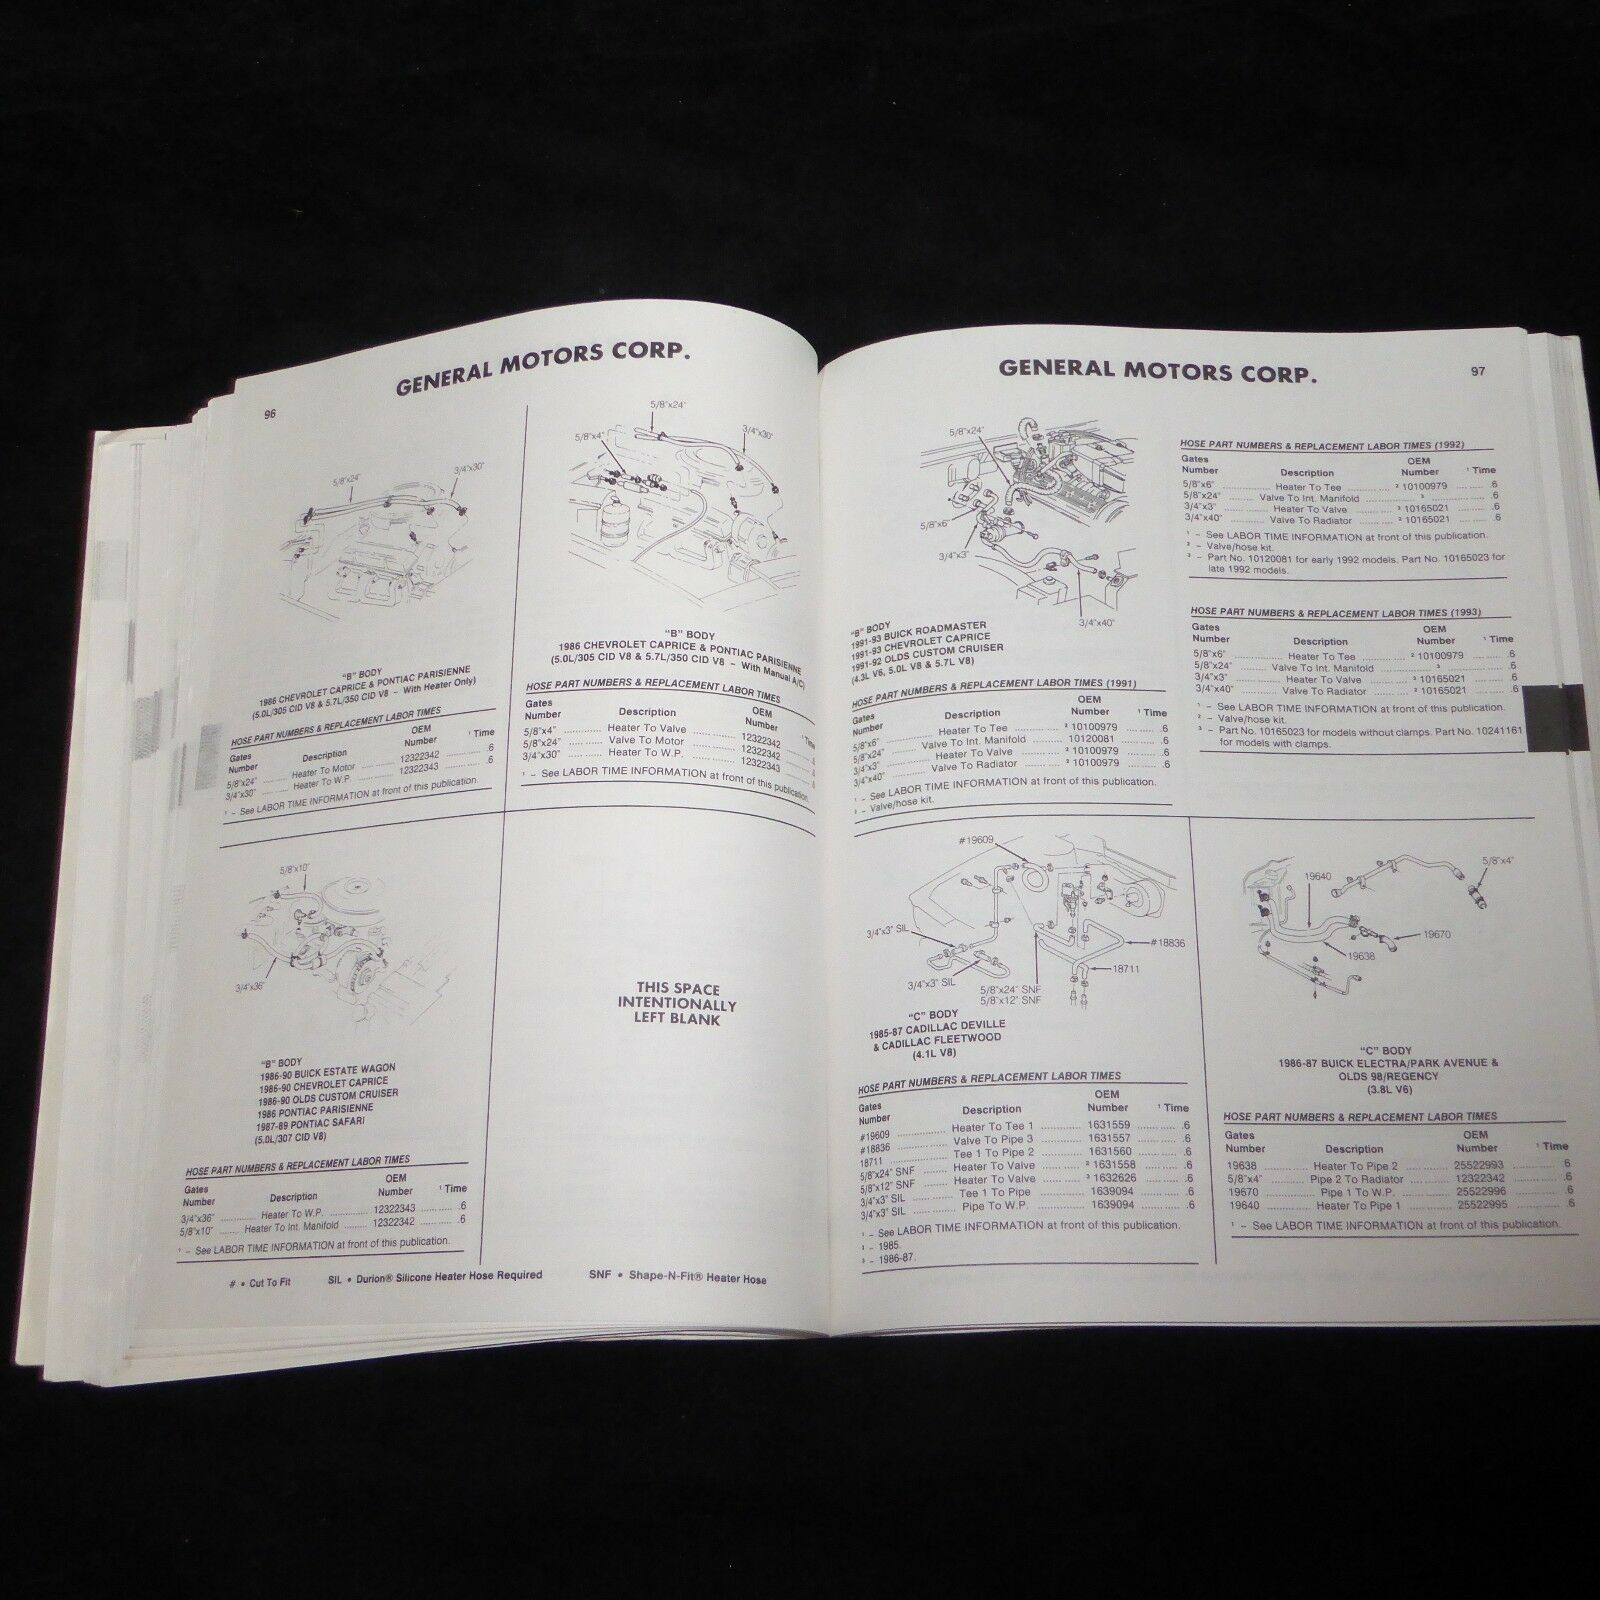 Used Chrysler Cooling Systems for Sale - Page 31